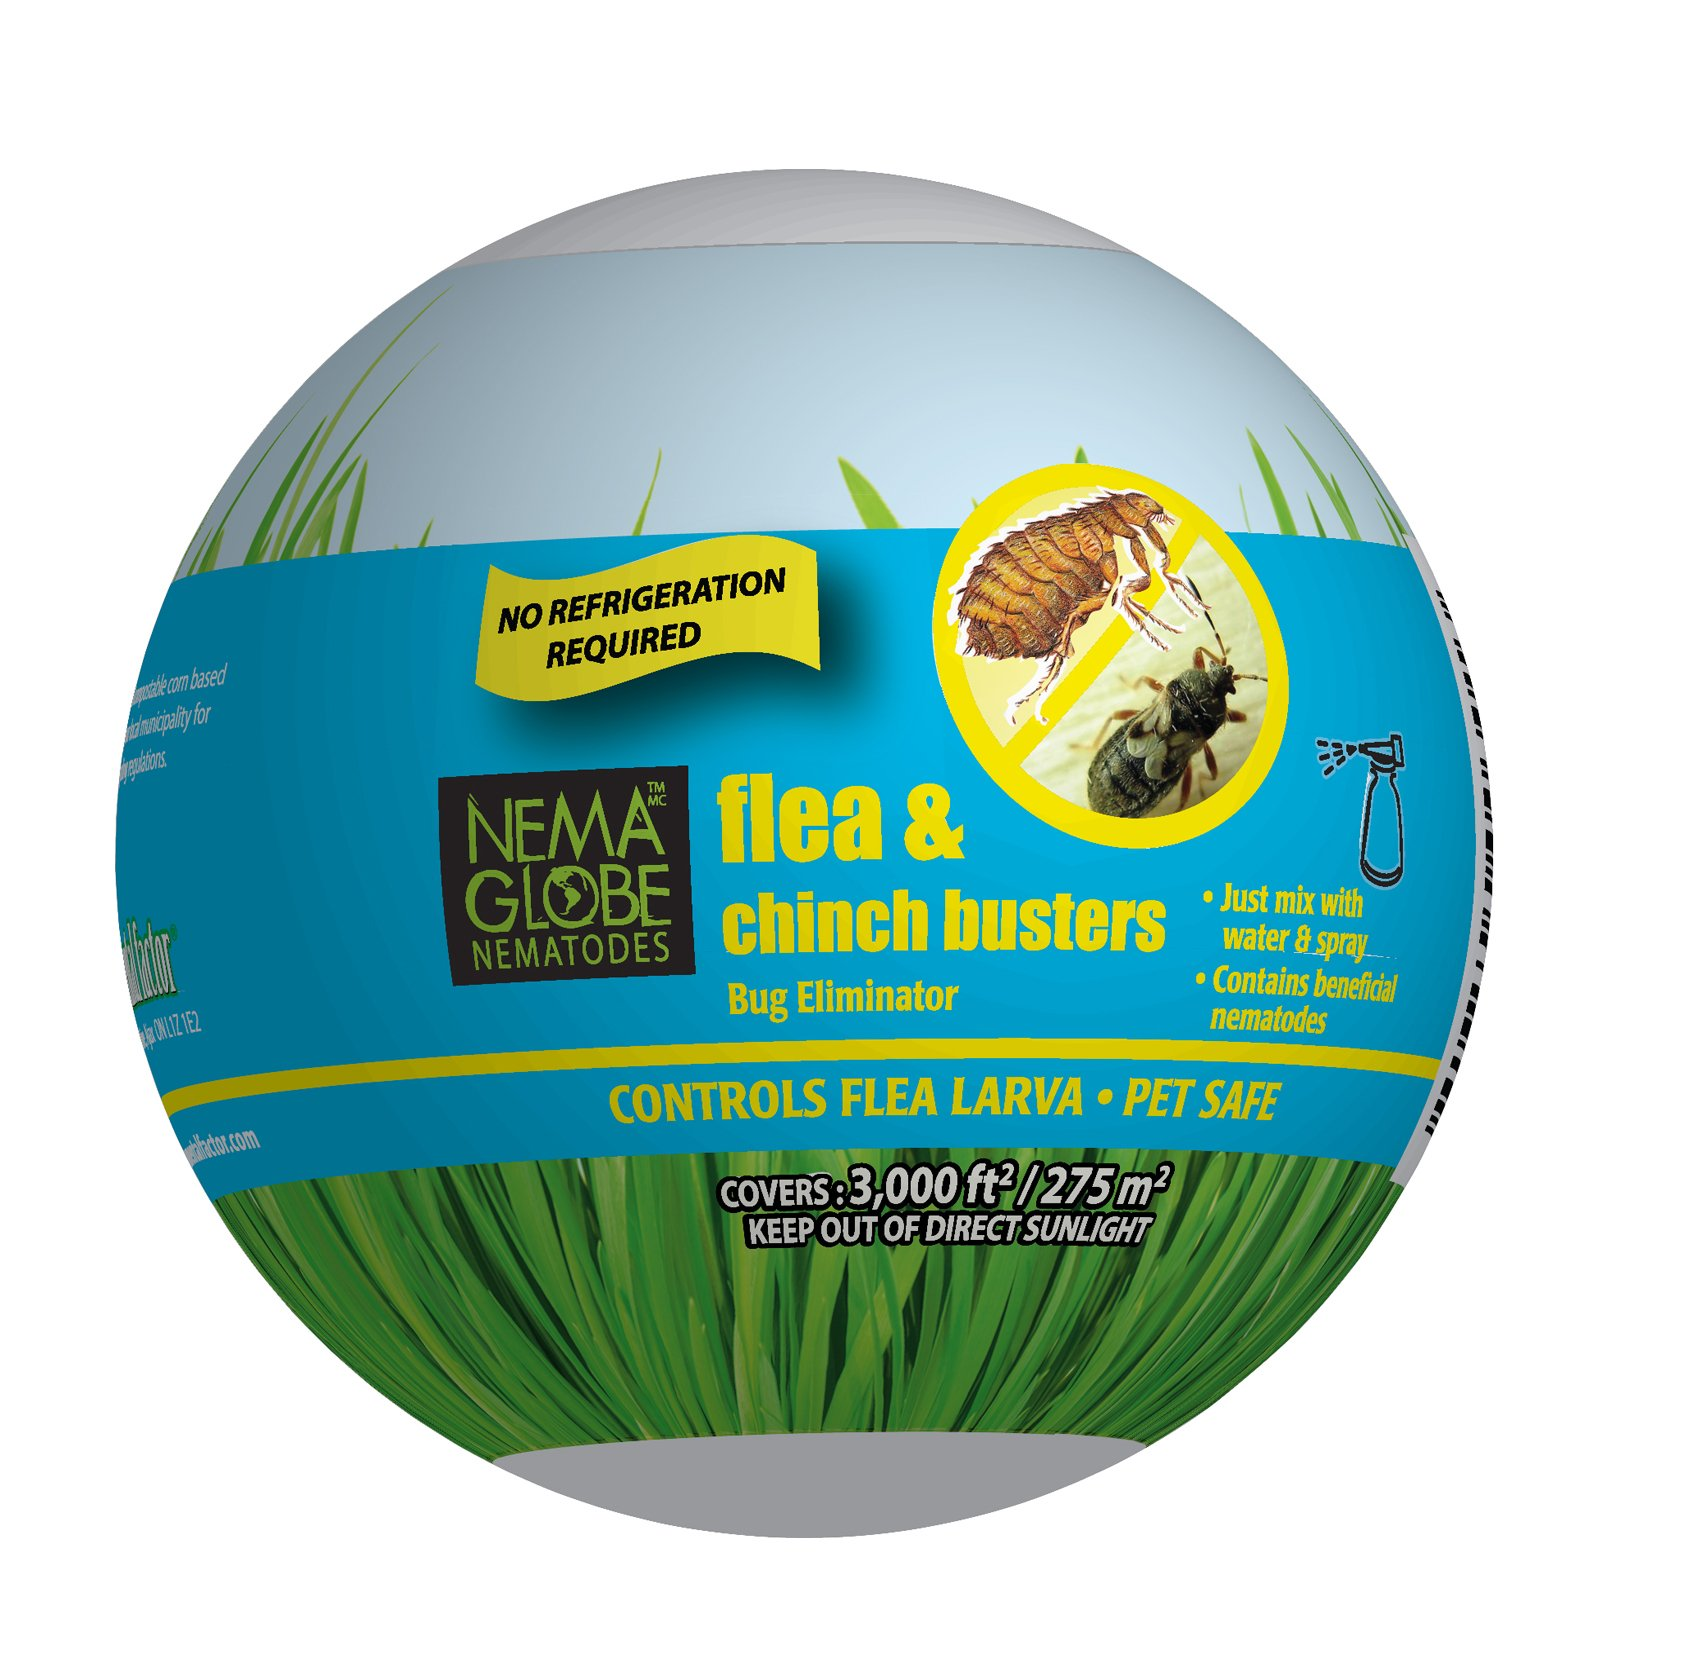 Nema Globe 100 Million Nematodes (Sc) - Flea Buster for Pest Control - New ''No Refrigeration Required'' Formula